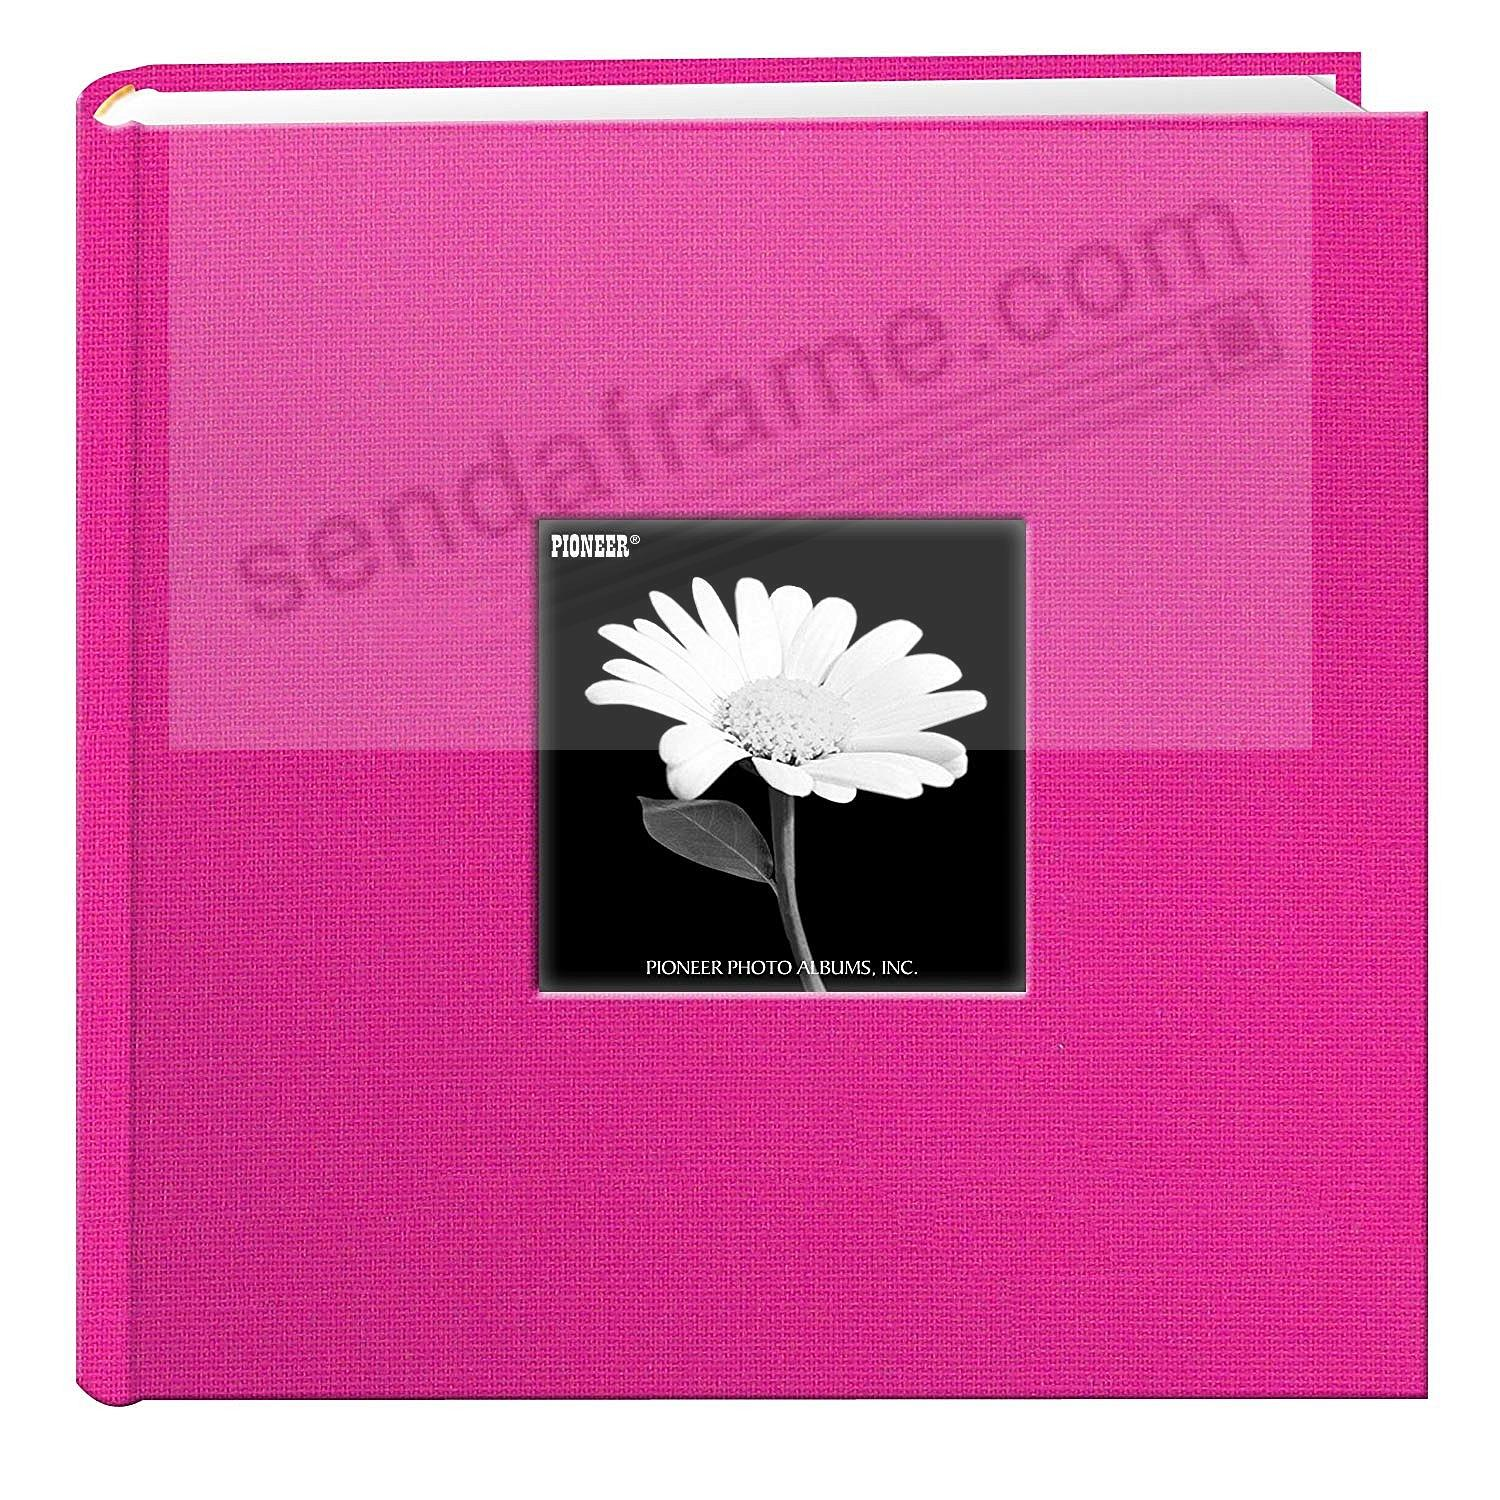 Bright-Pink cloth 2-up frame cover photo album by Pioneer®